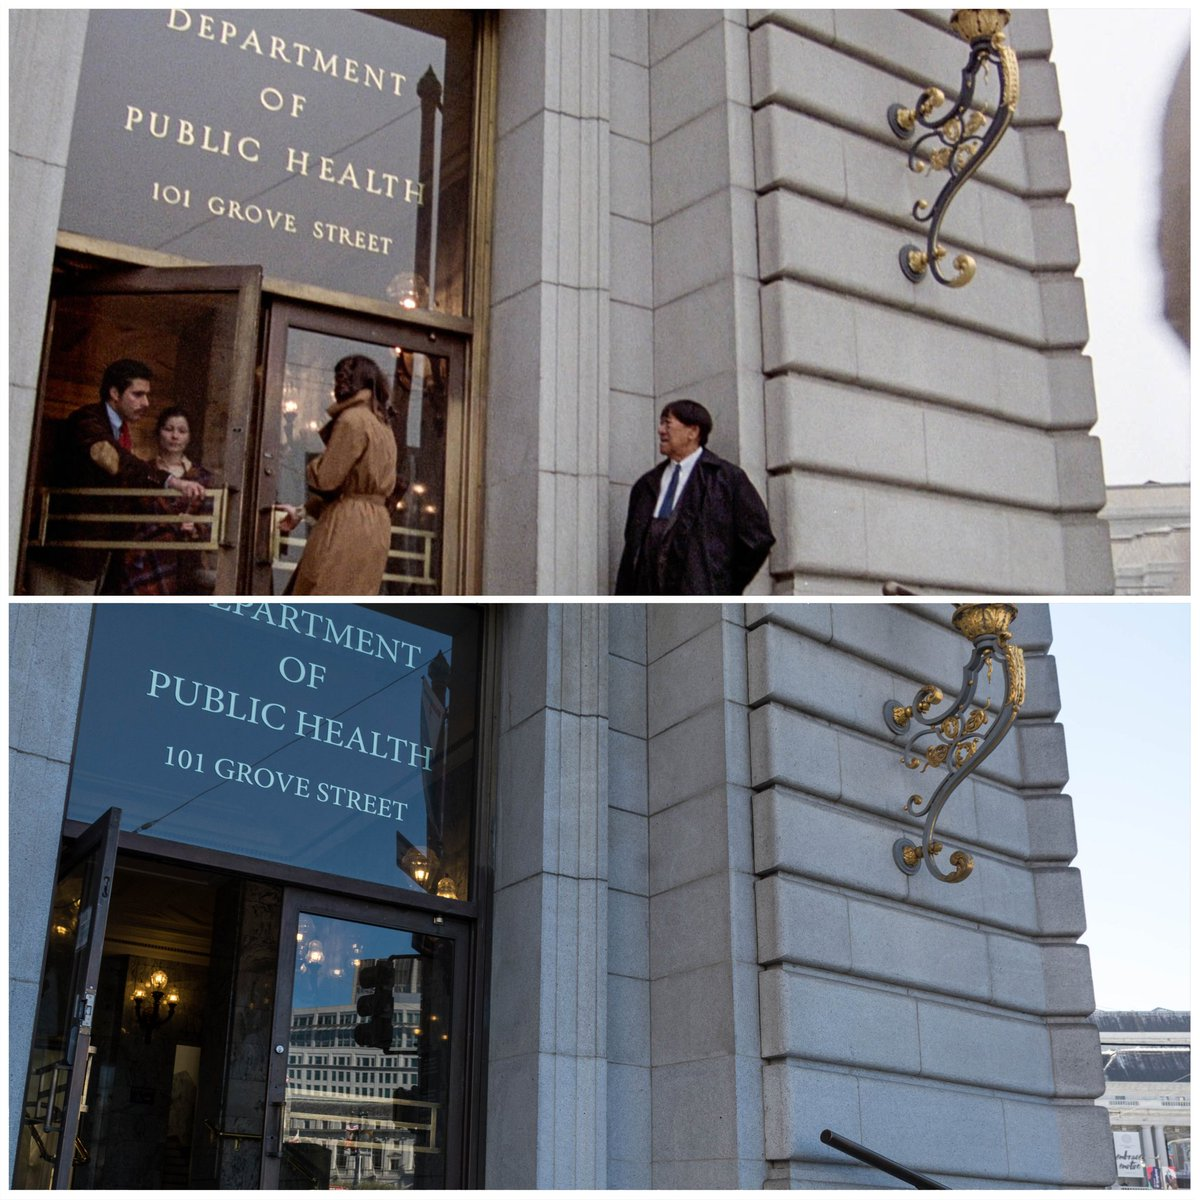 🎥Invasion of the Body Snatchers 📷September 2018  🌎Dept of Public Health, San Francisco, California  • #InvasionOfTheBodySnatchers #SanFrancisco #California #BrookeAdams #Movies #FilmingLocations #MovieLocations. #Photography #TravelPhotography #HorrorMovies #VisitCalifornia